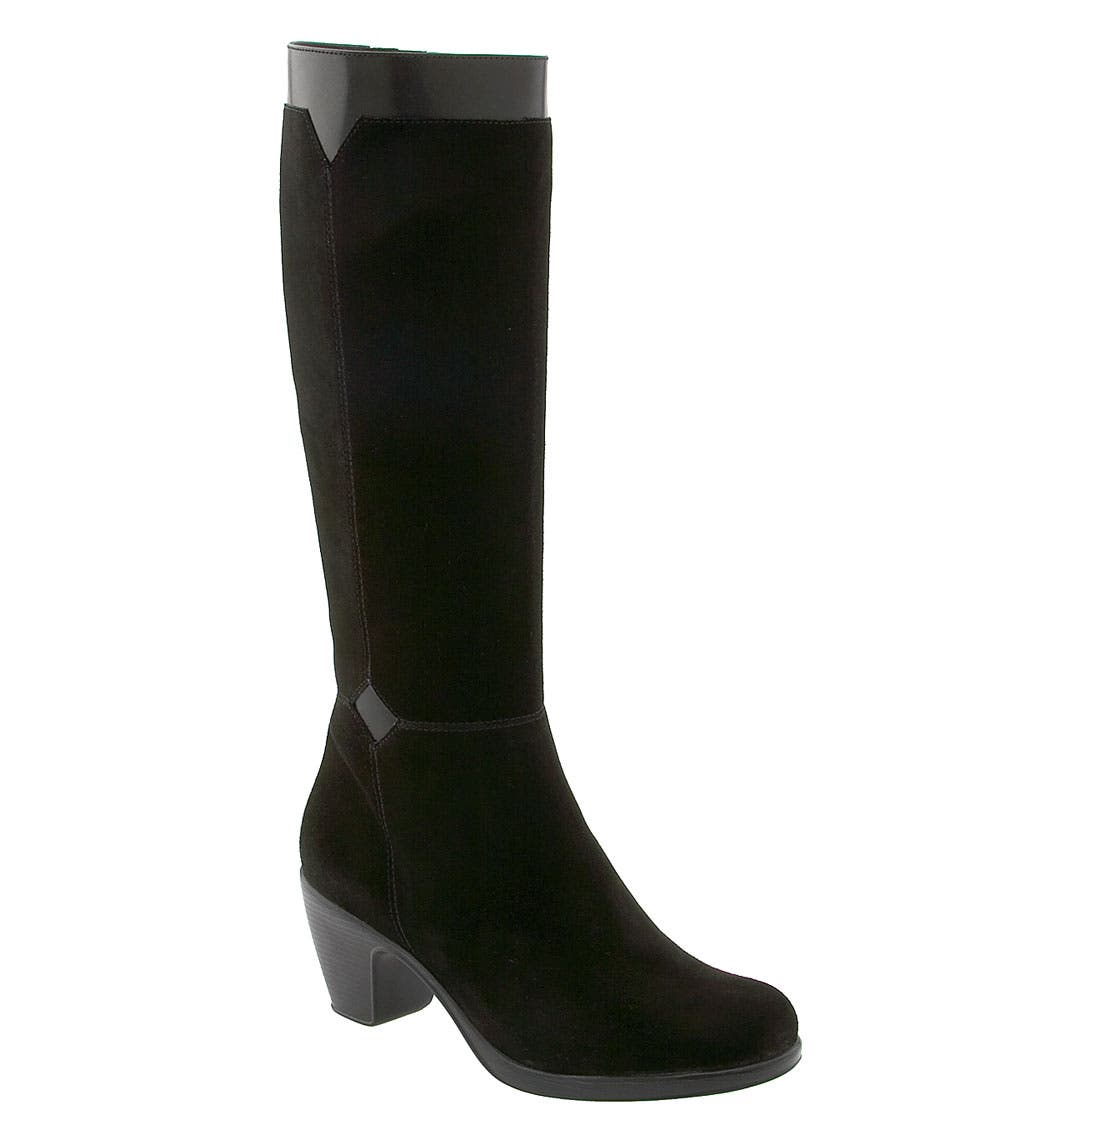 Alternate Image 1 Selected - Dansko 'Bella' Tall Boot